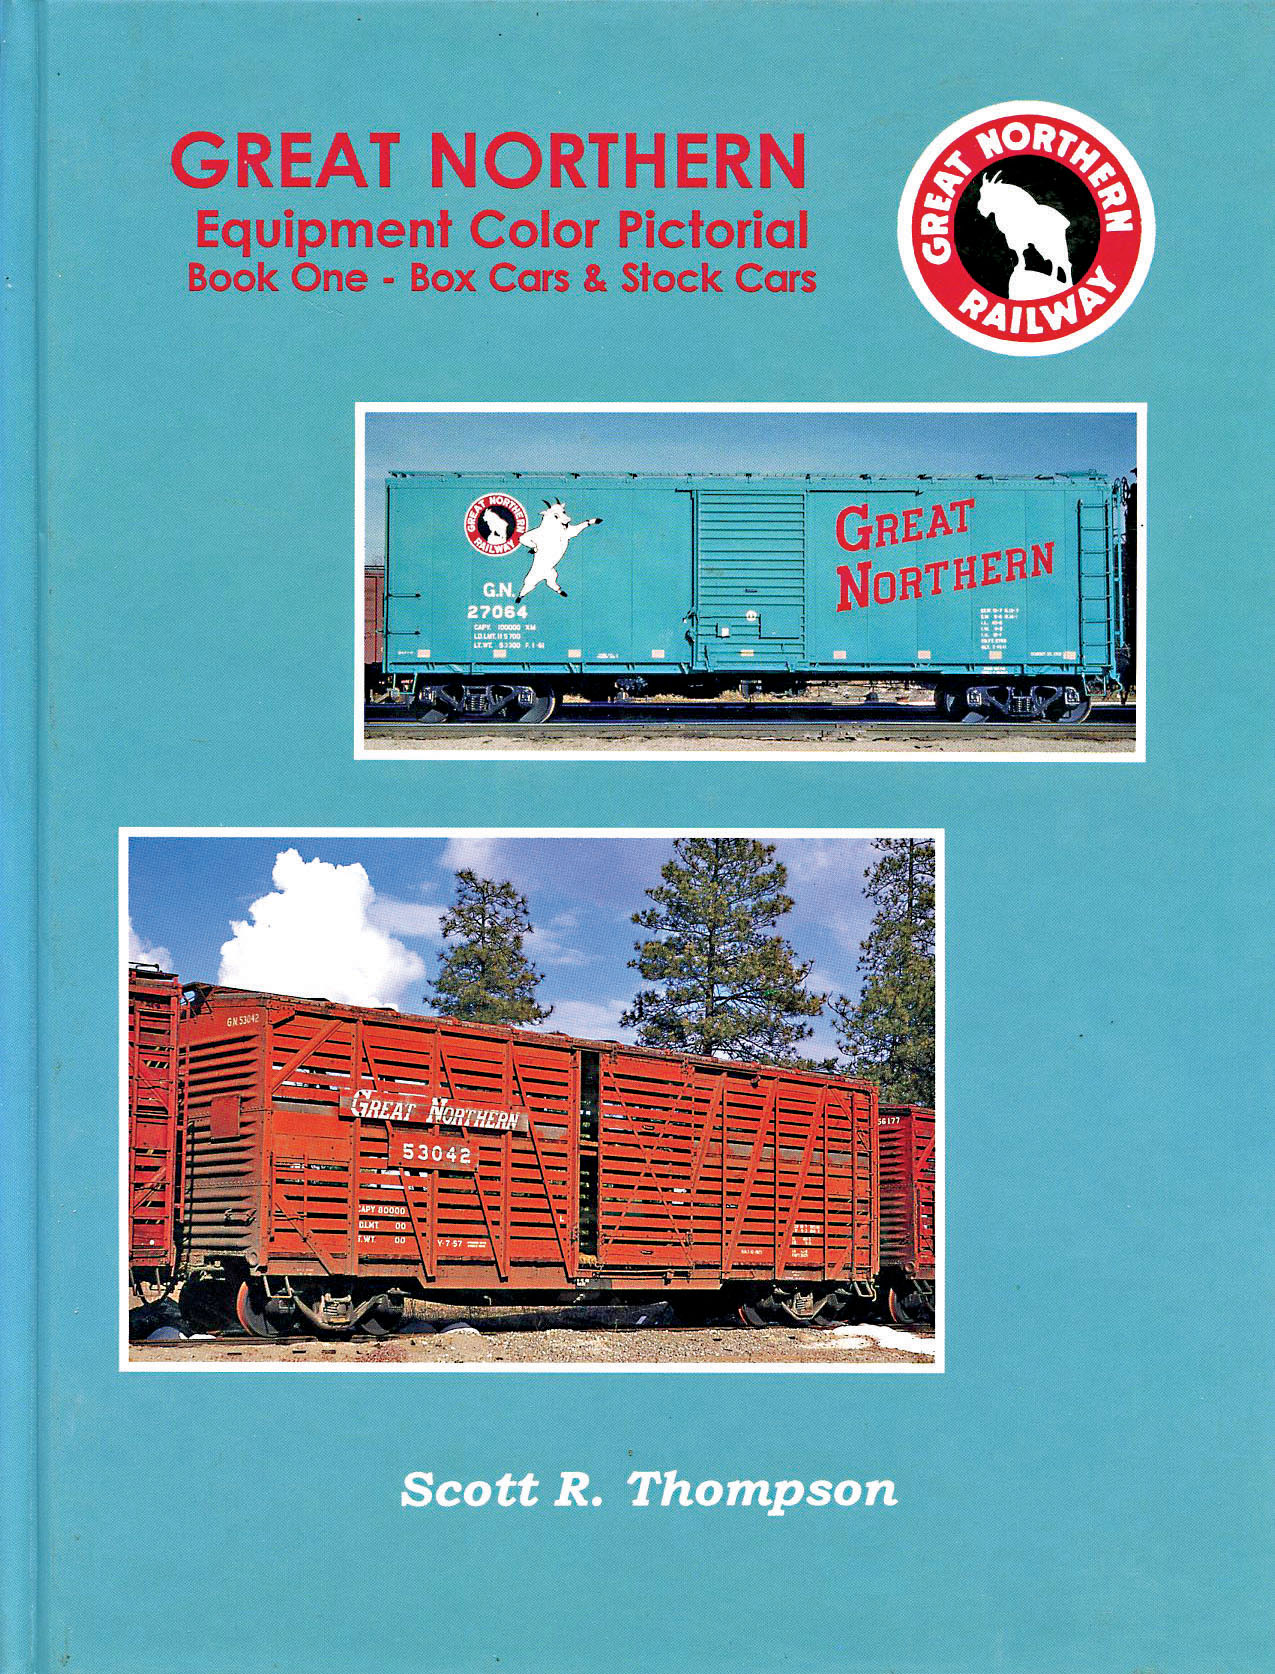 Great Northern Equipment Book 1